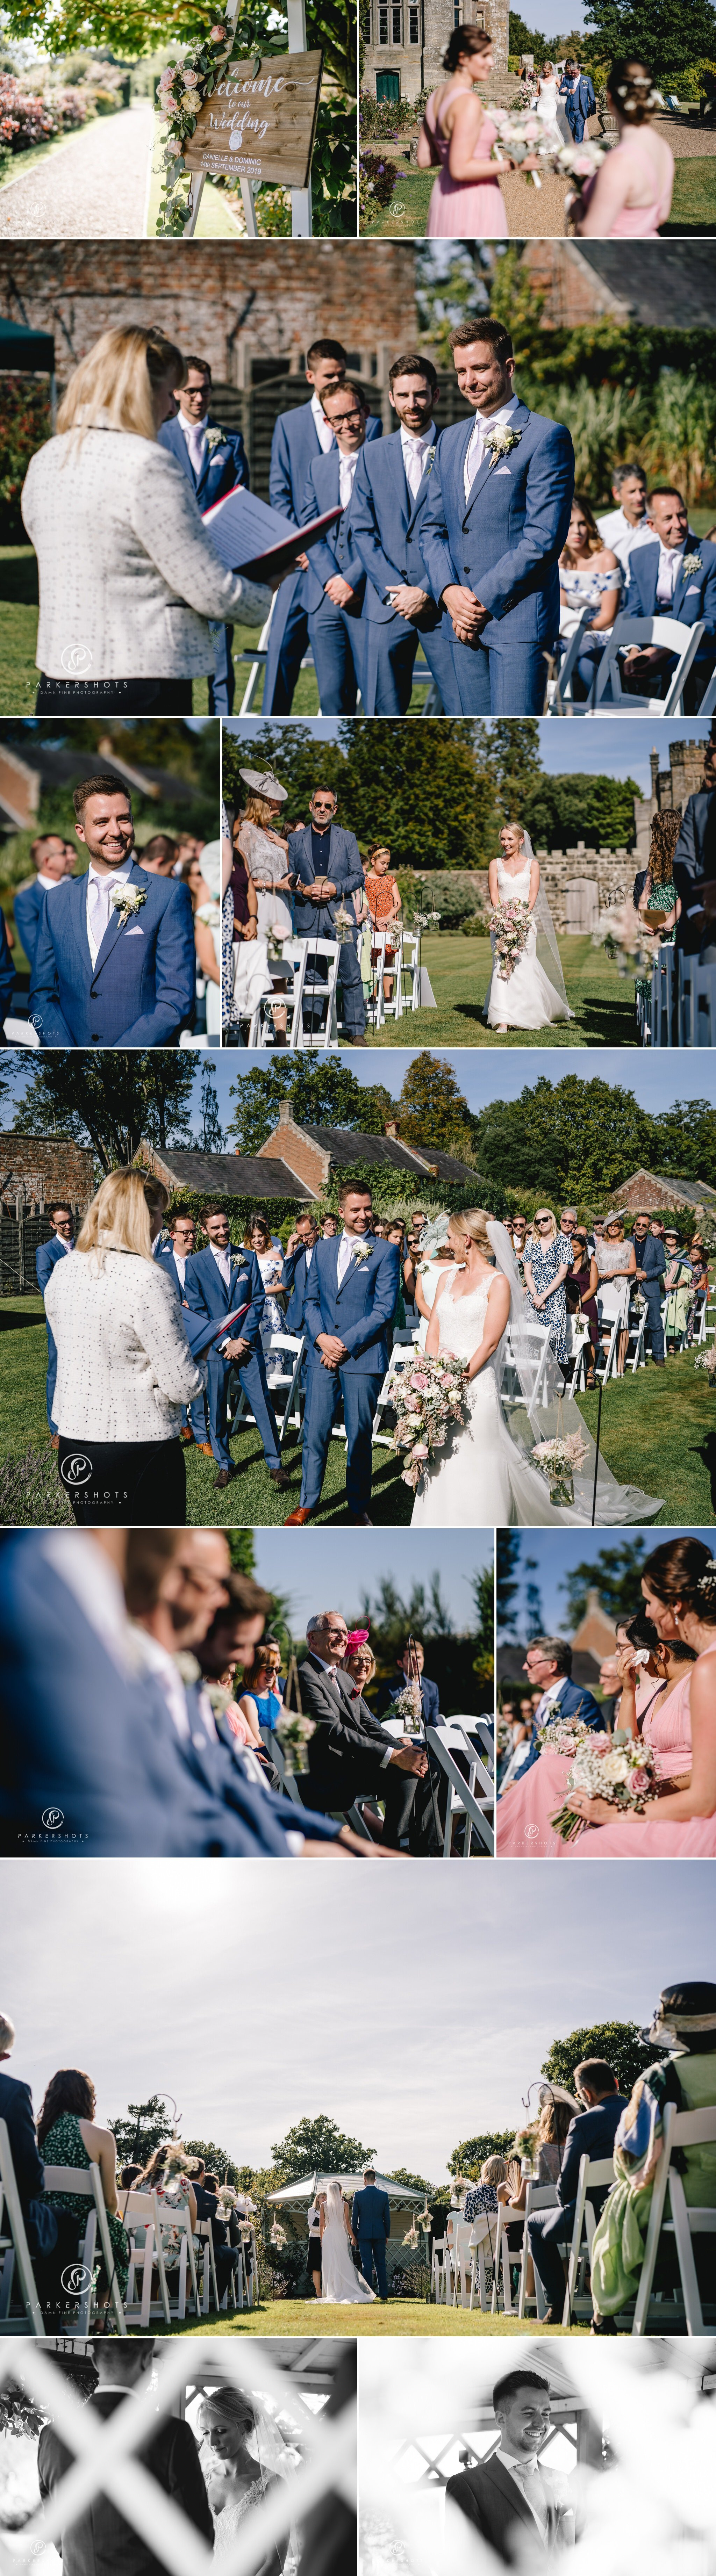 Wadhurst Castle Wedding Photographer Ceremony